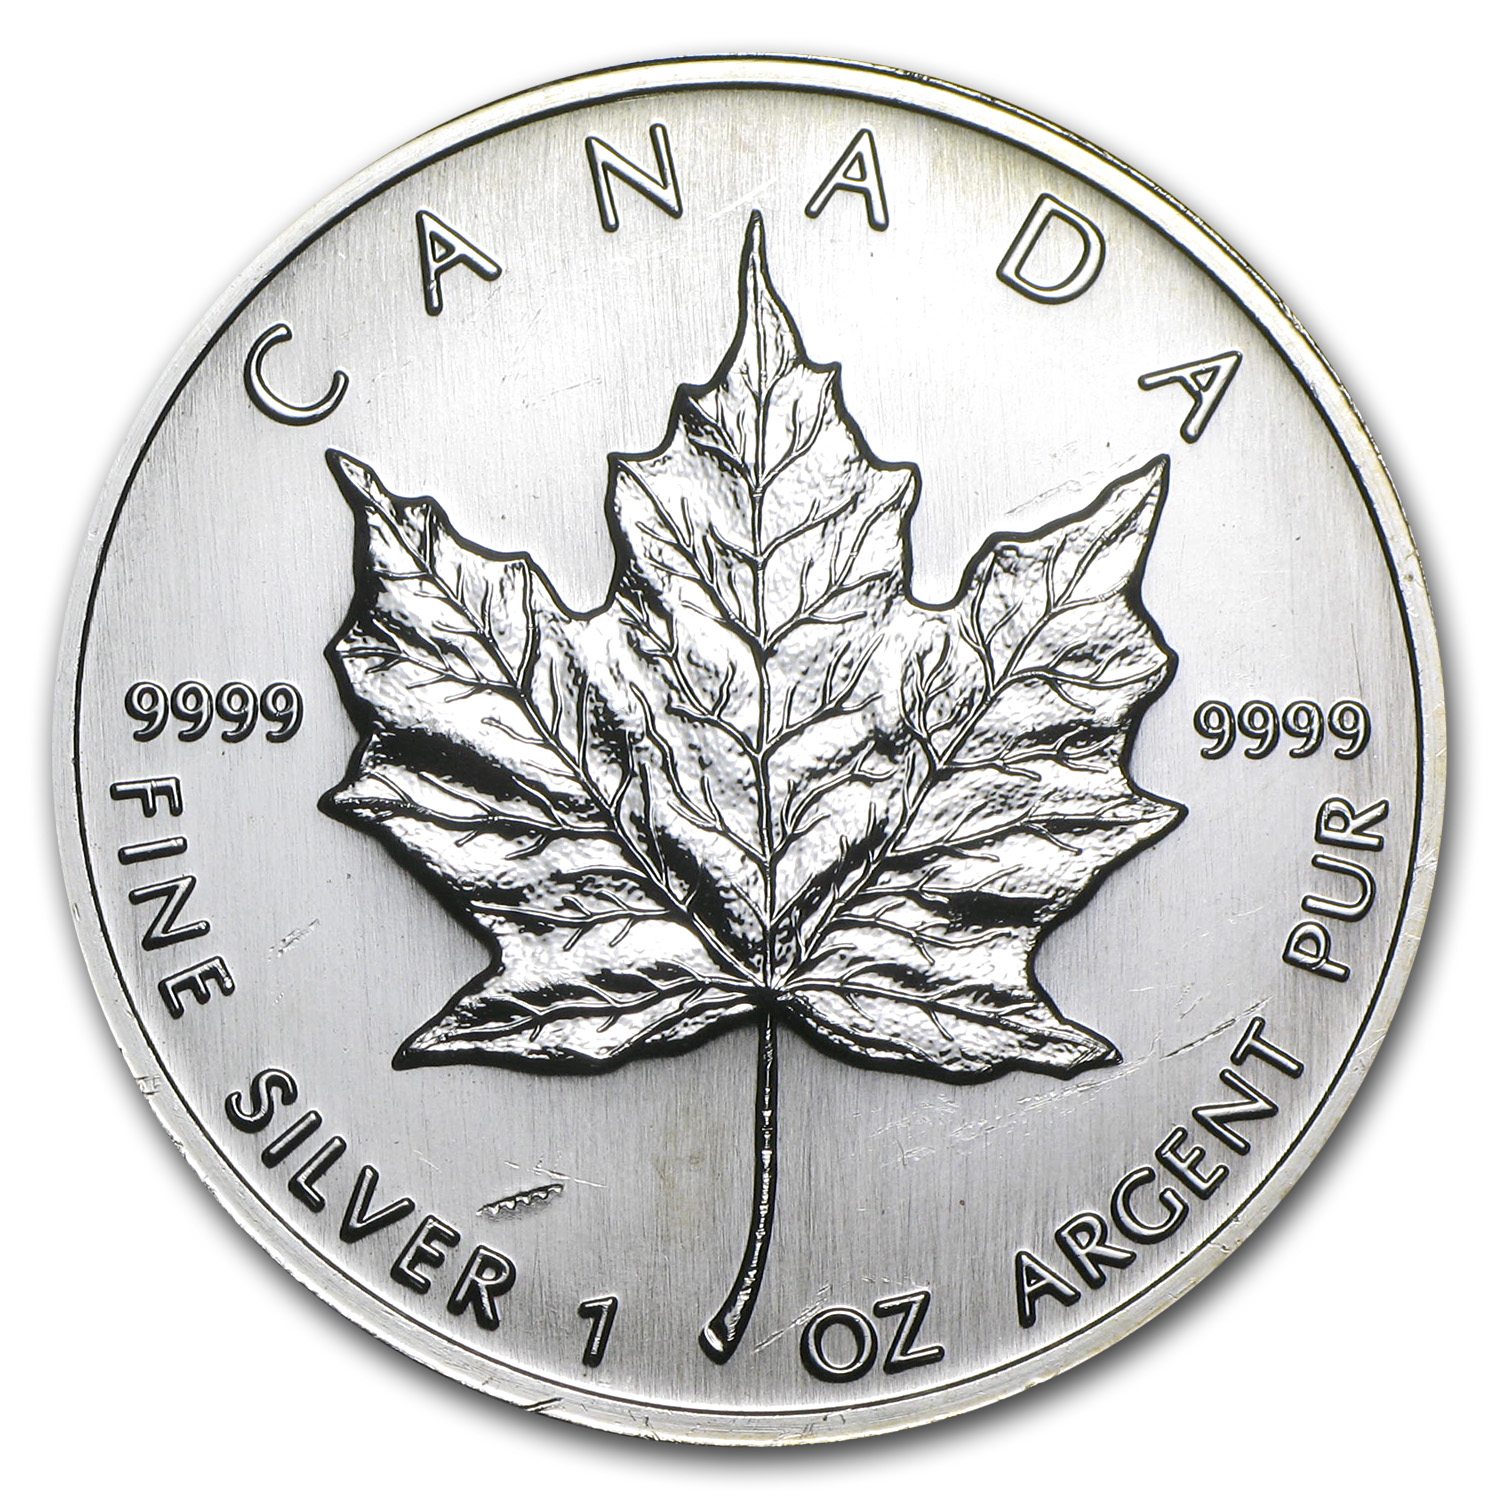 1997 1 oz Silver Canadian Maple Leaf (Light Abrasions)